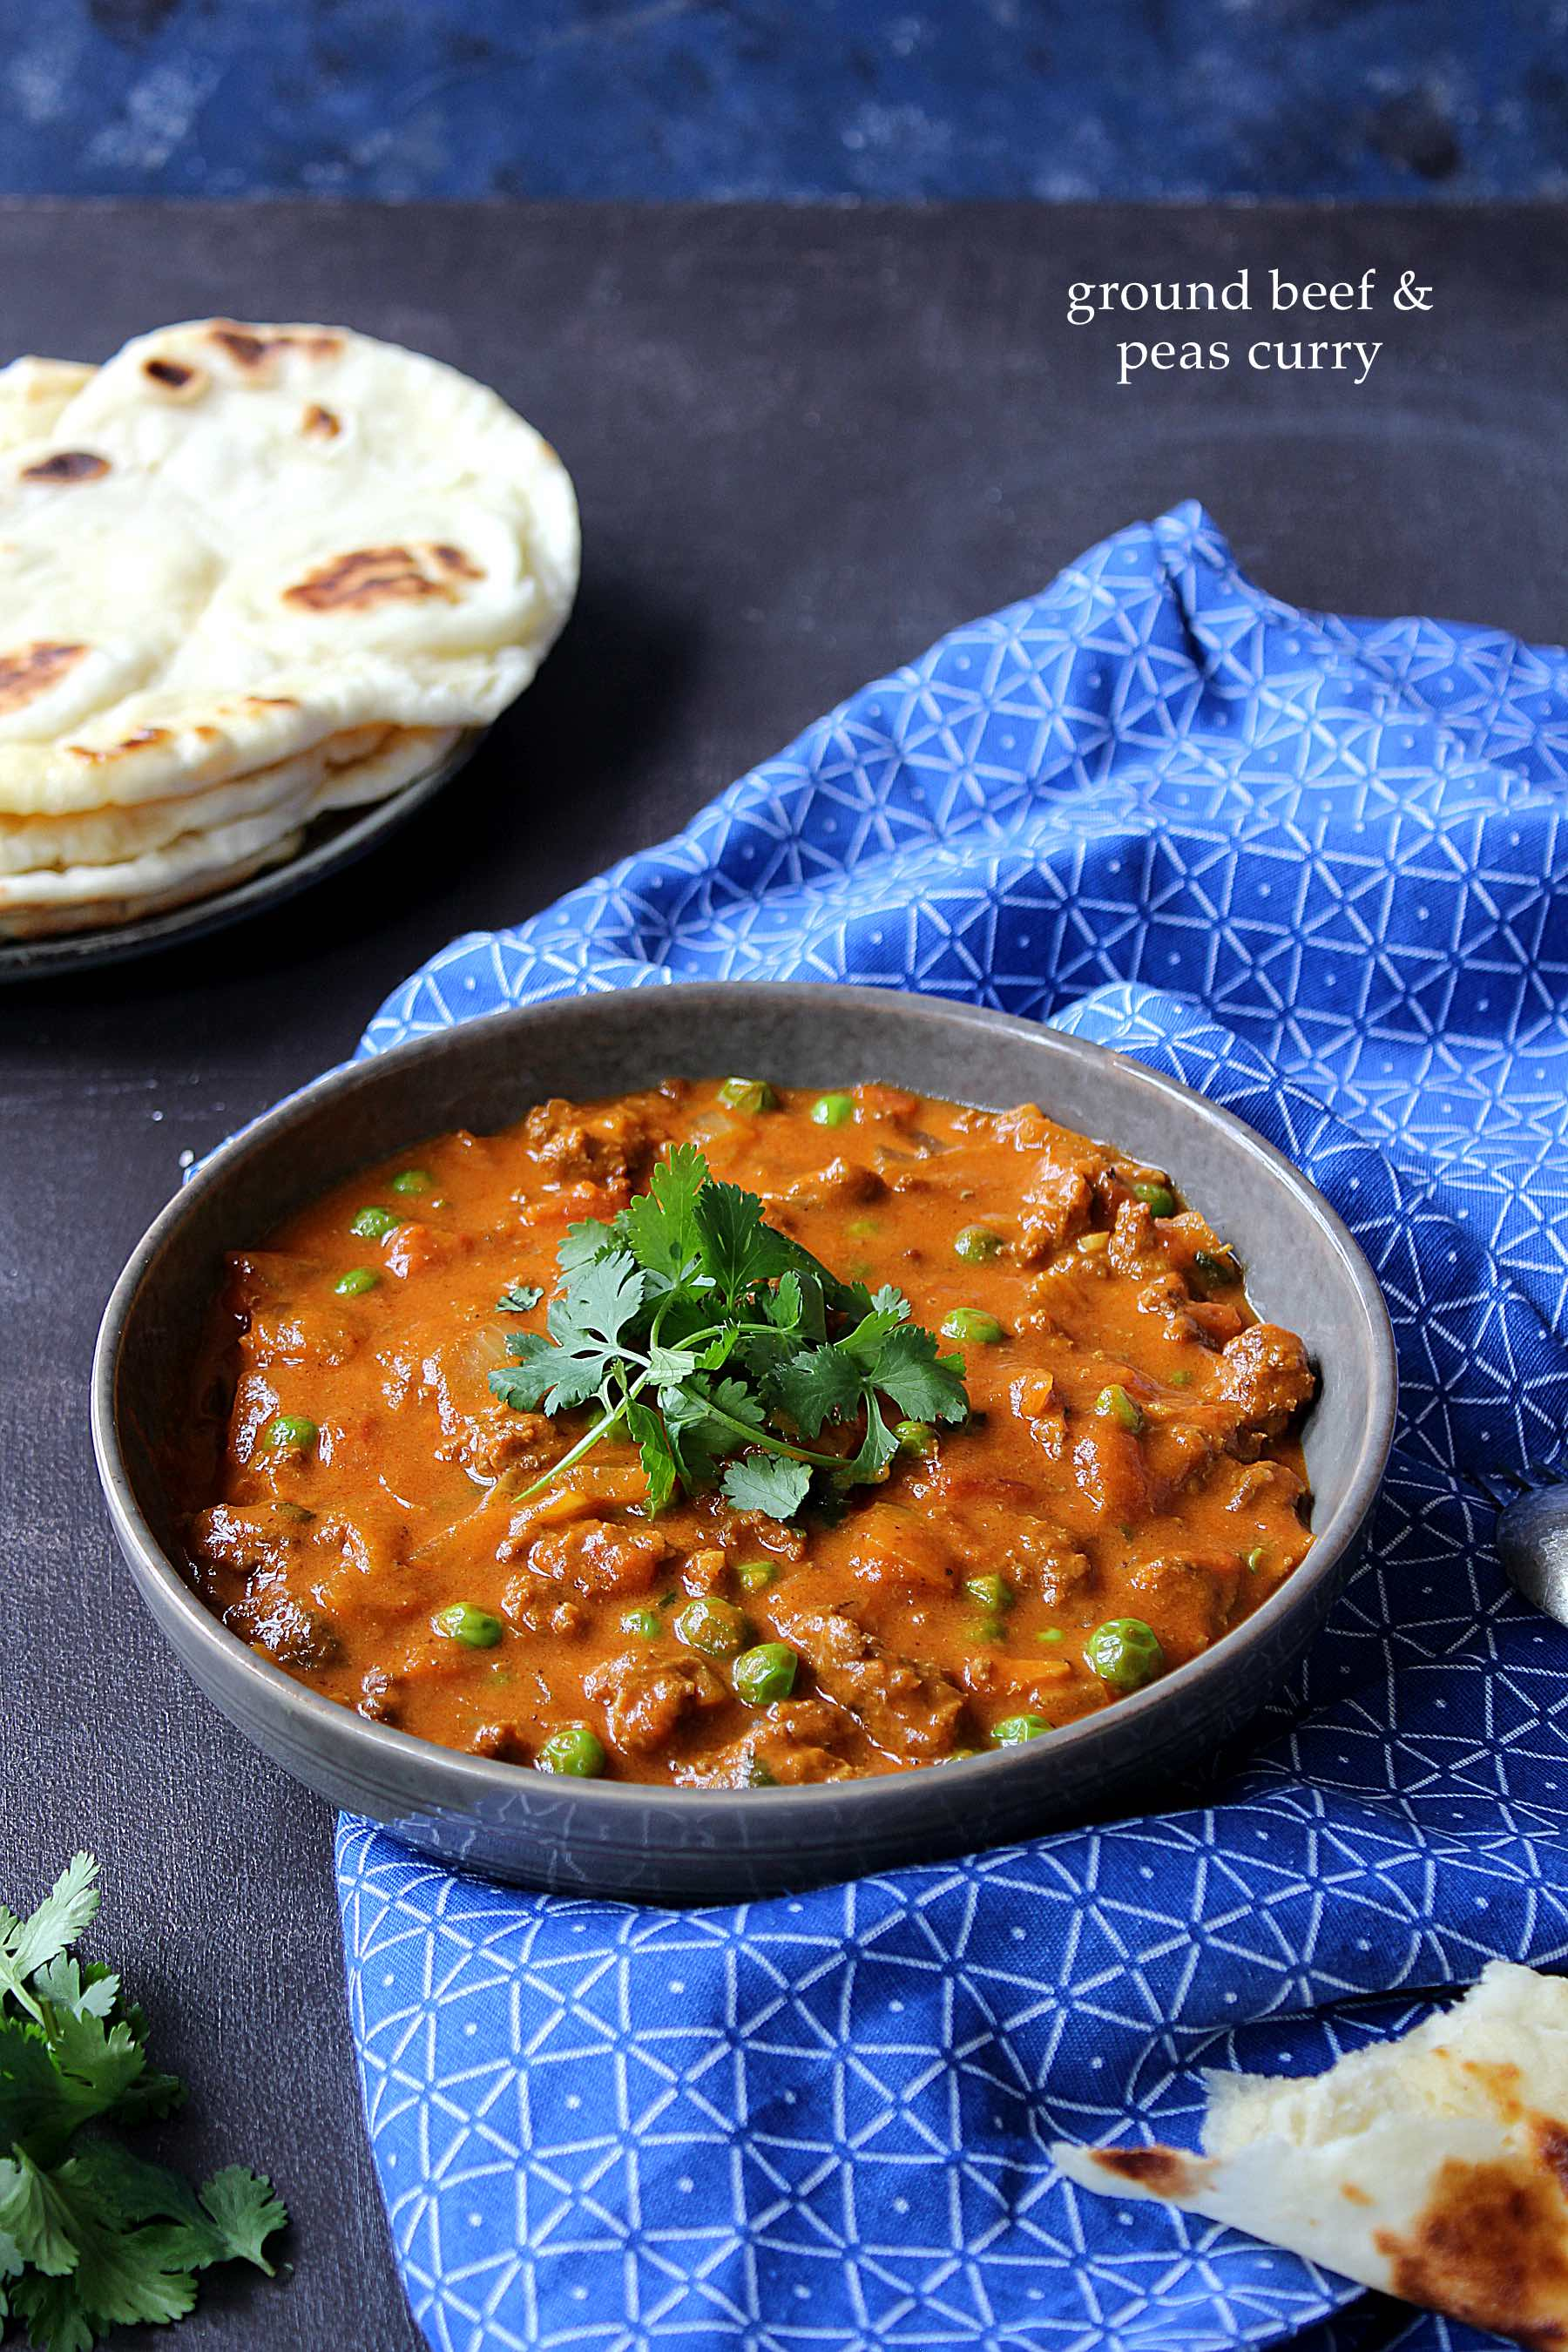 Ground beef and peas curry